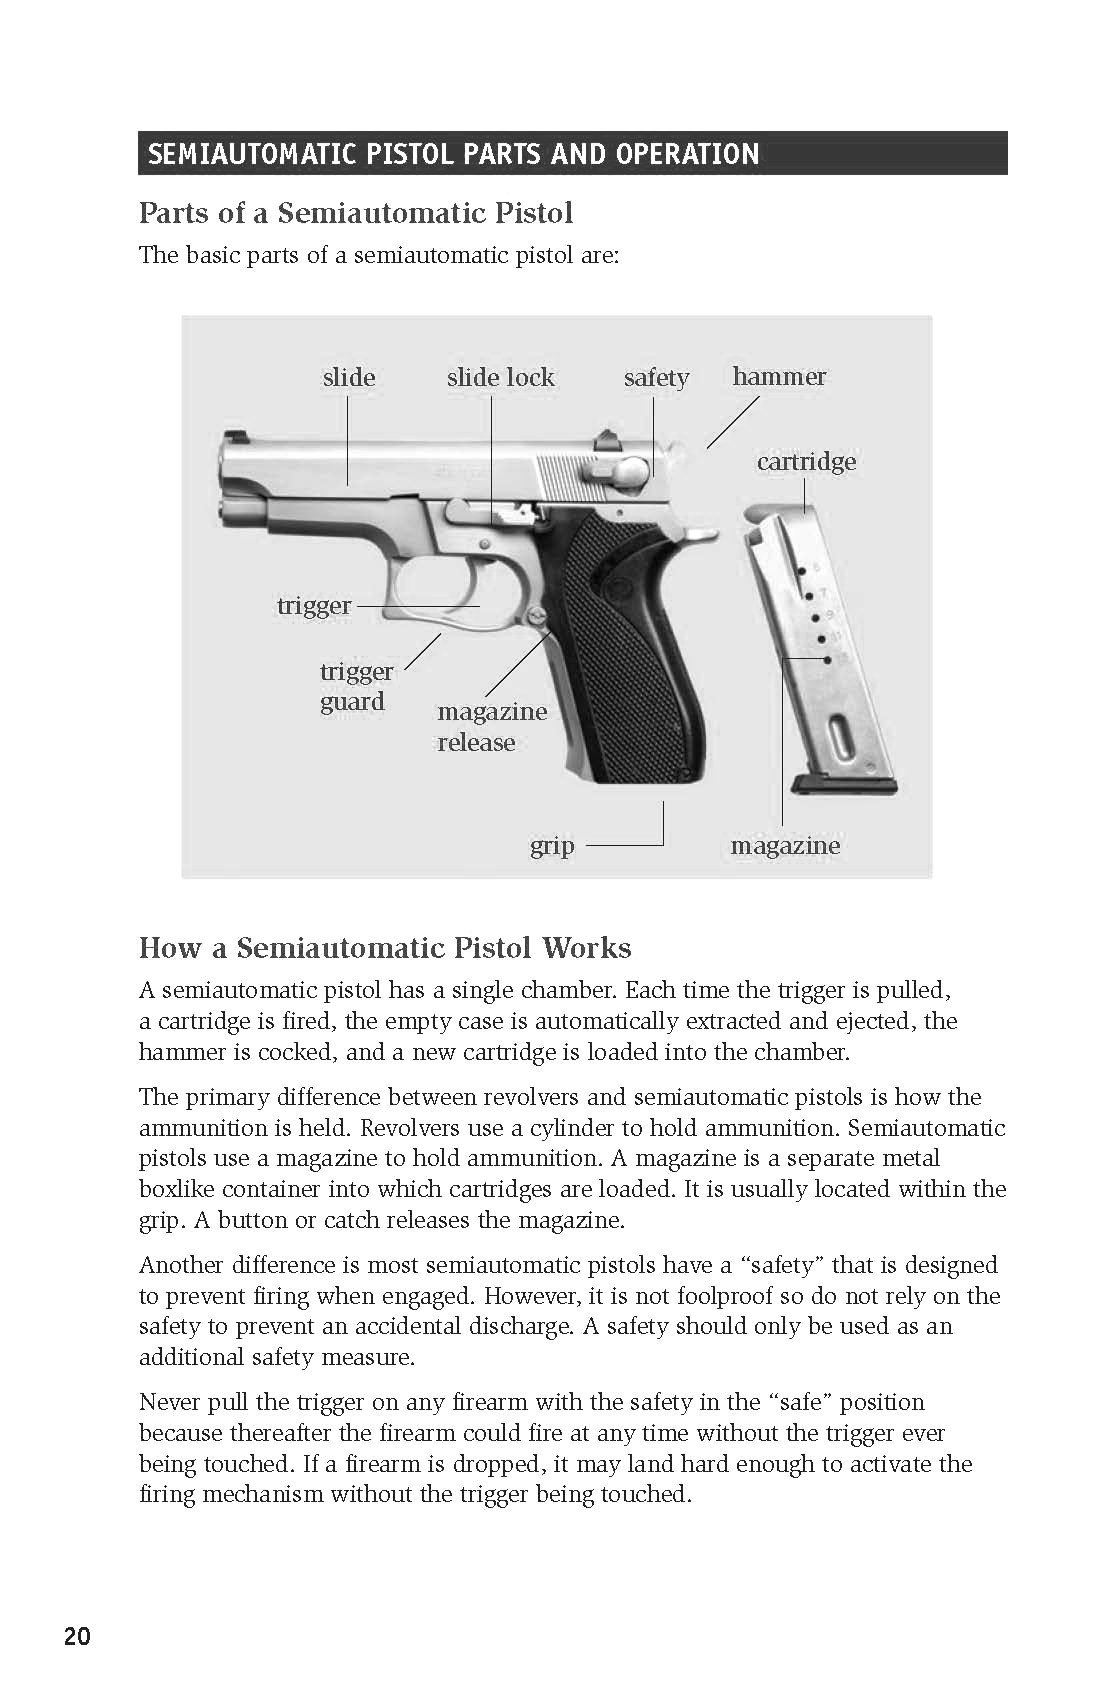 Handgun safety and handgun drills the california hangun safety handgun safety and handgun drills the california hangun safety certificate study guide with a book of over 80 drills and 9 reproducible target templates 1betcityfo Images